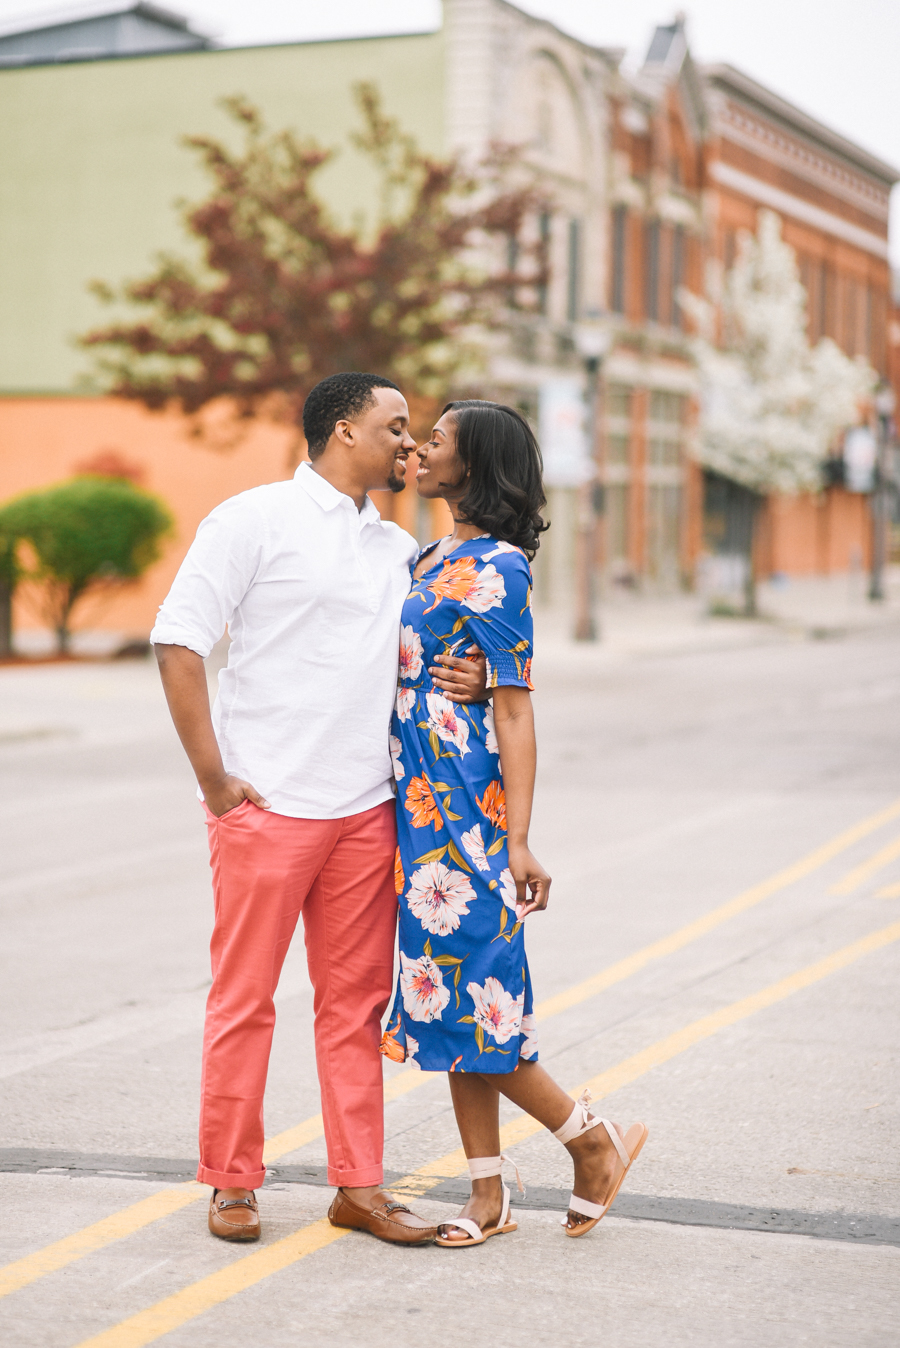 Old_Town_Lansing_Engagement_Photos-23.jpg